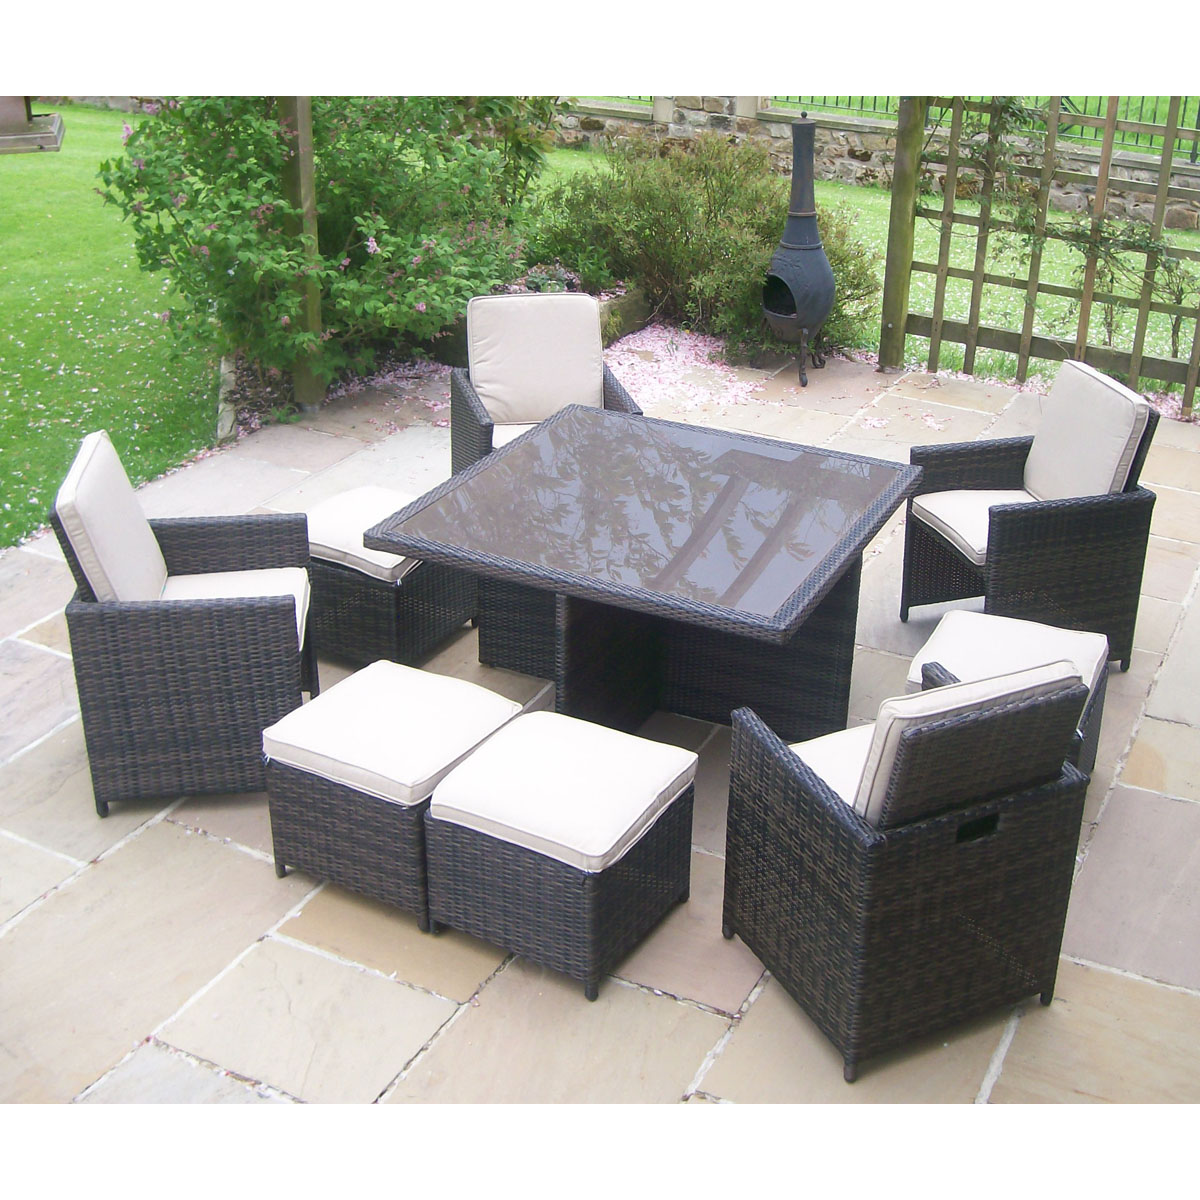 Patio furniture rattan patio furniture for Outdoor wicker patio furniture